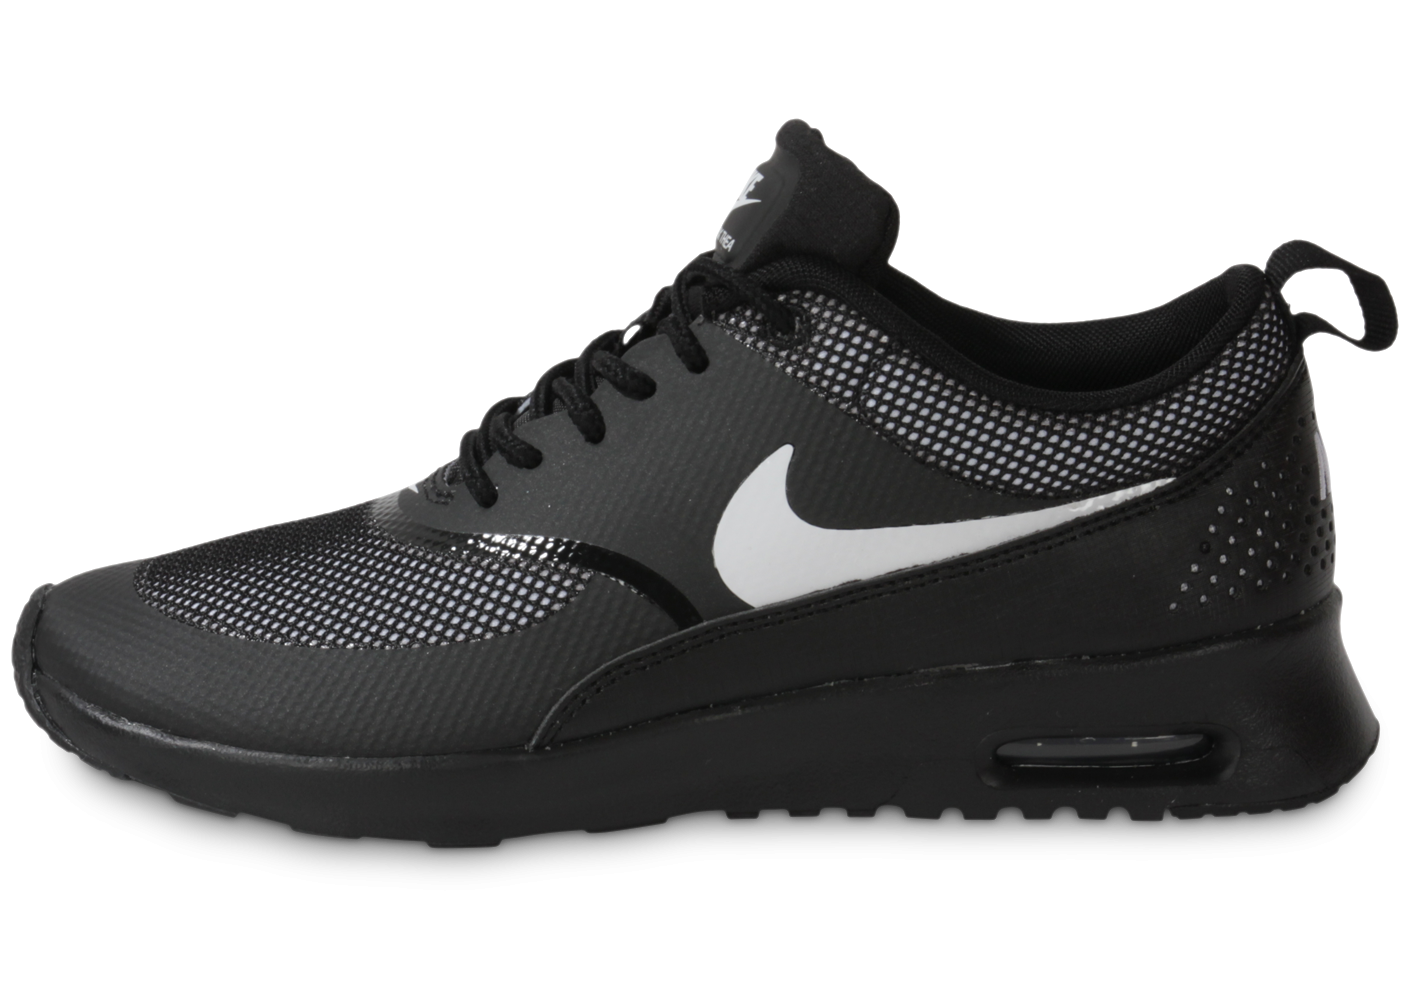 Nike Air Max Thea , baskets Air Max - Chausport   nike   Pinterest ... cd685e065390